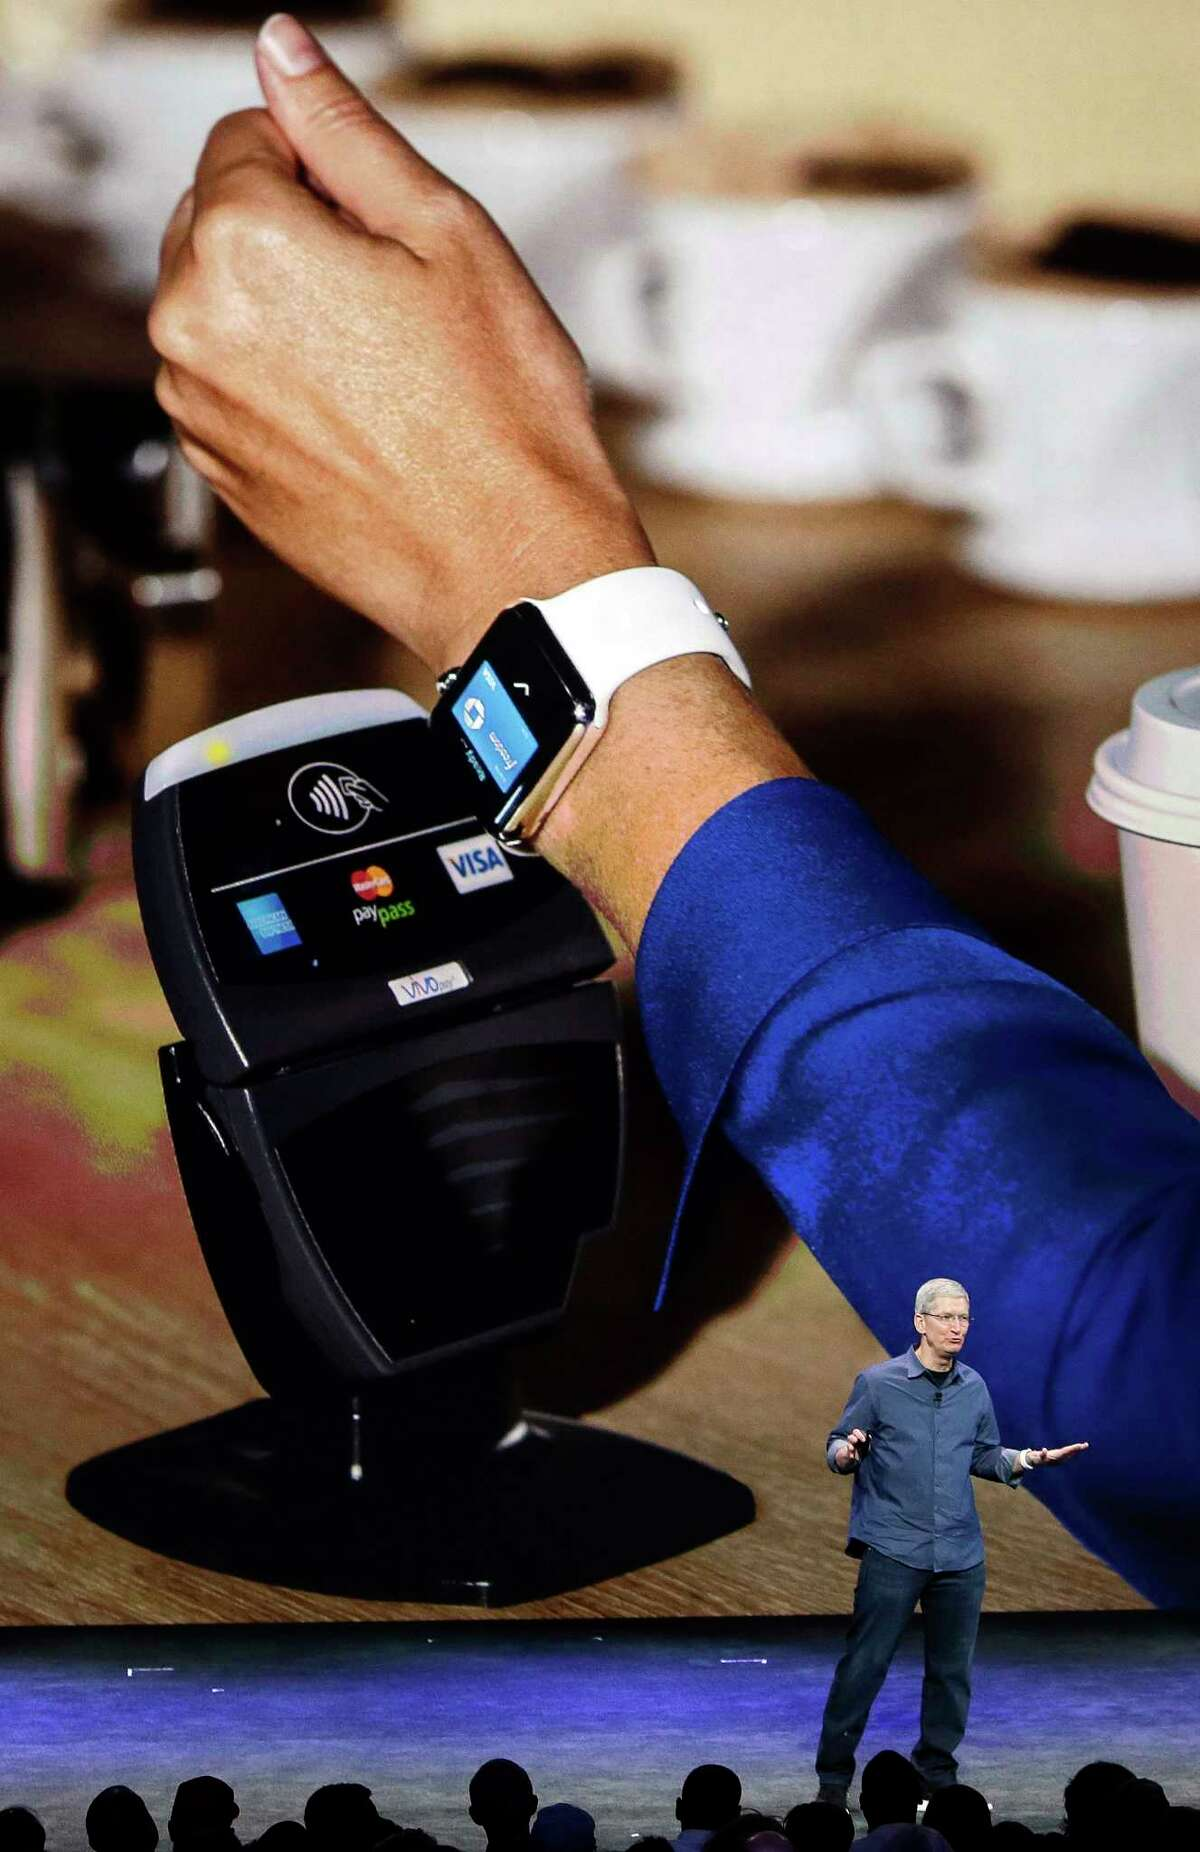 Apple CEO Tim Cook explains how the Apple Watch works in conjunction with Apple Pay during an announcements of new products on Tuesday, Sept. 9, 2014, in Cupertino, Calif.